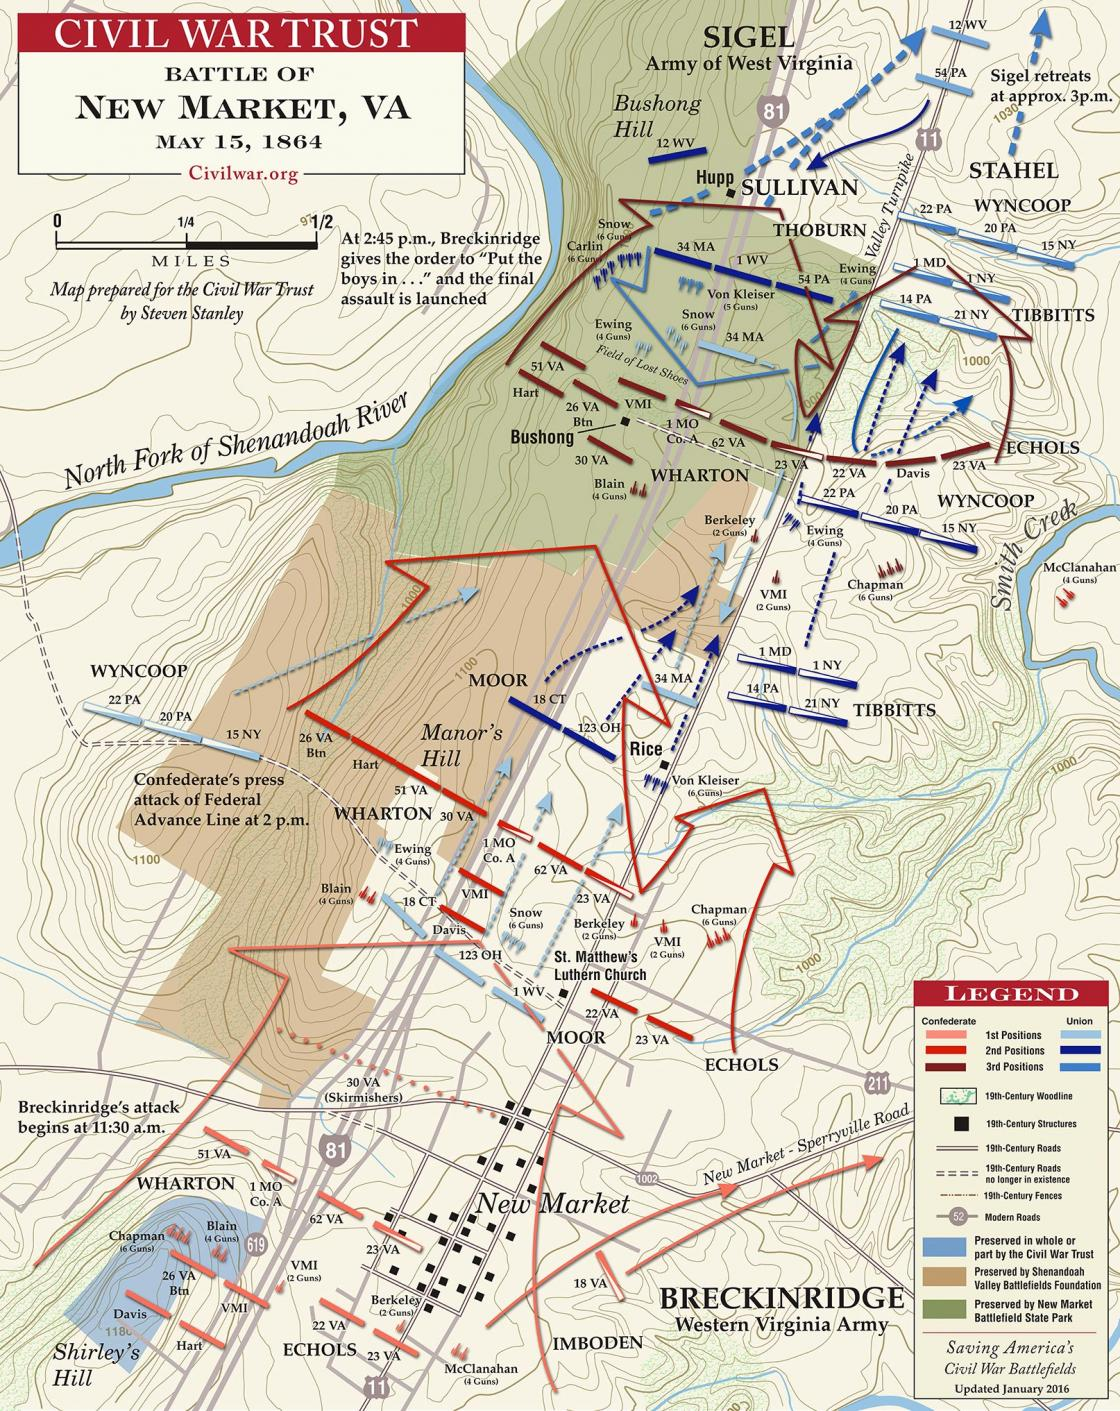 The Battle of New Market - May 15, 1864